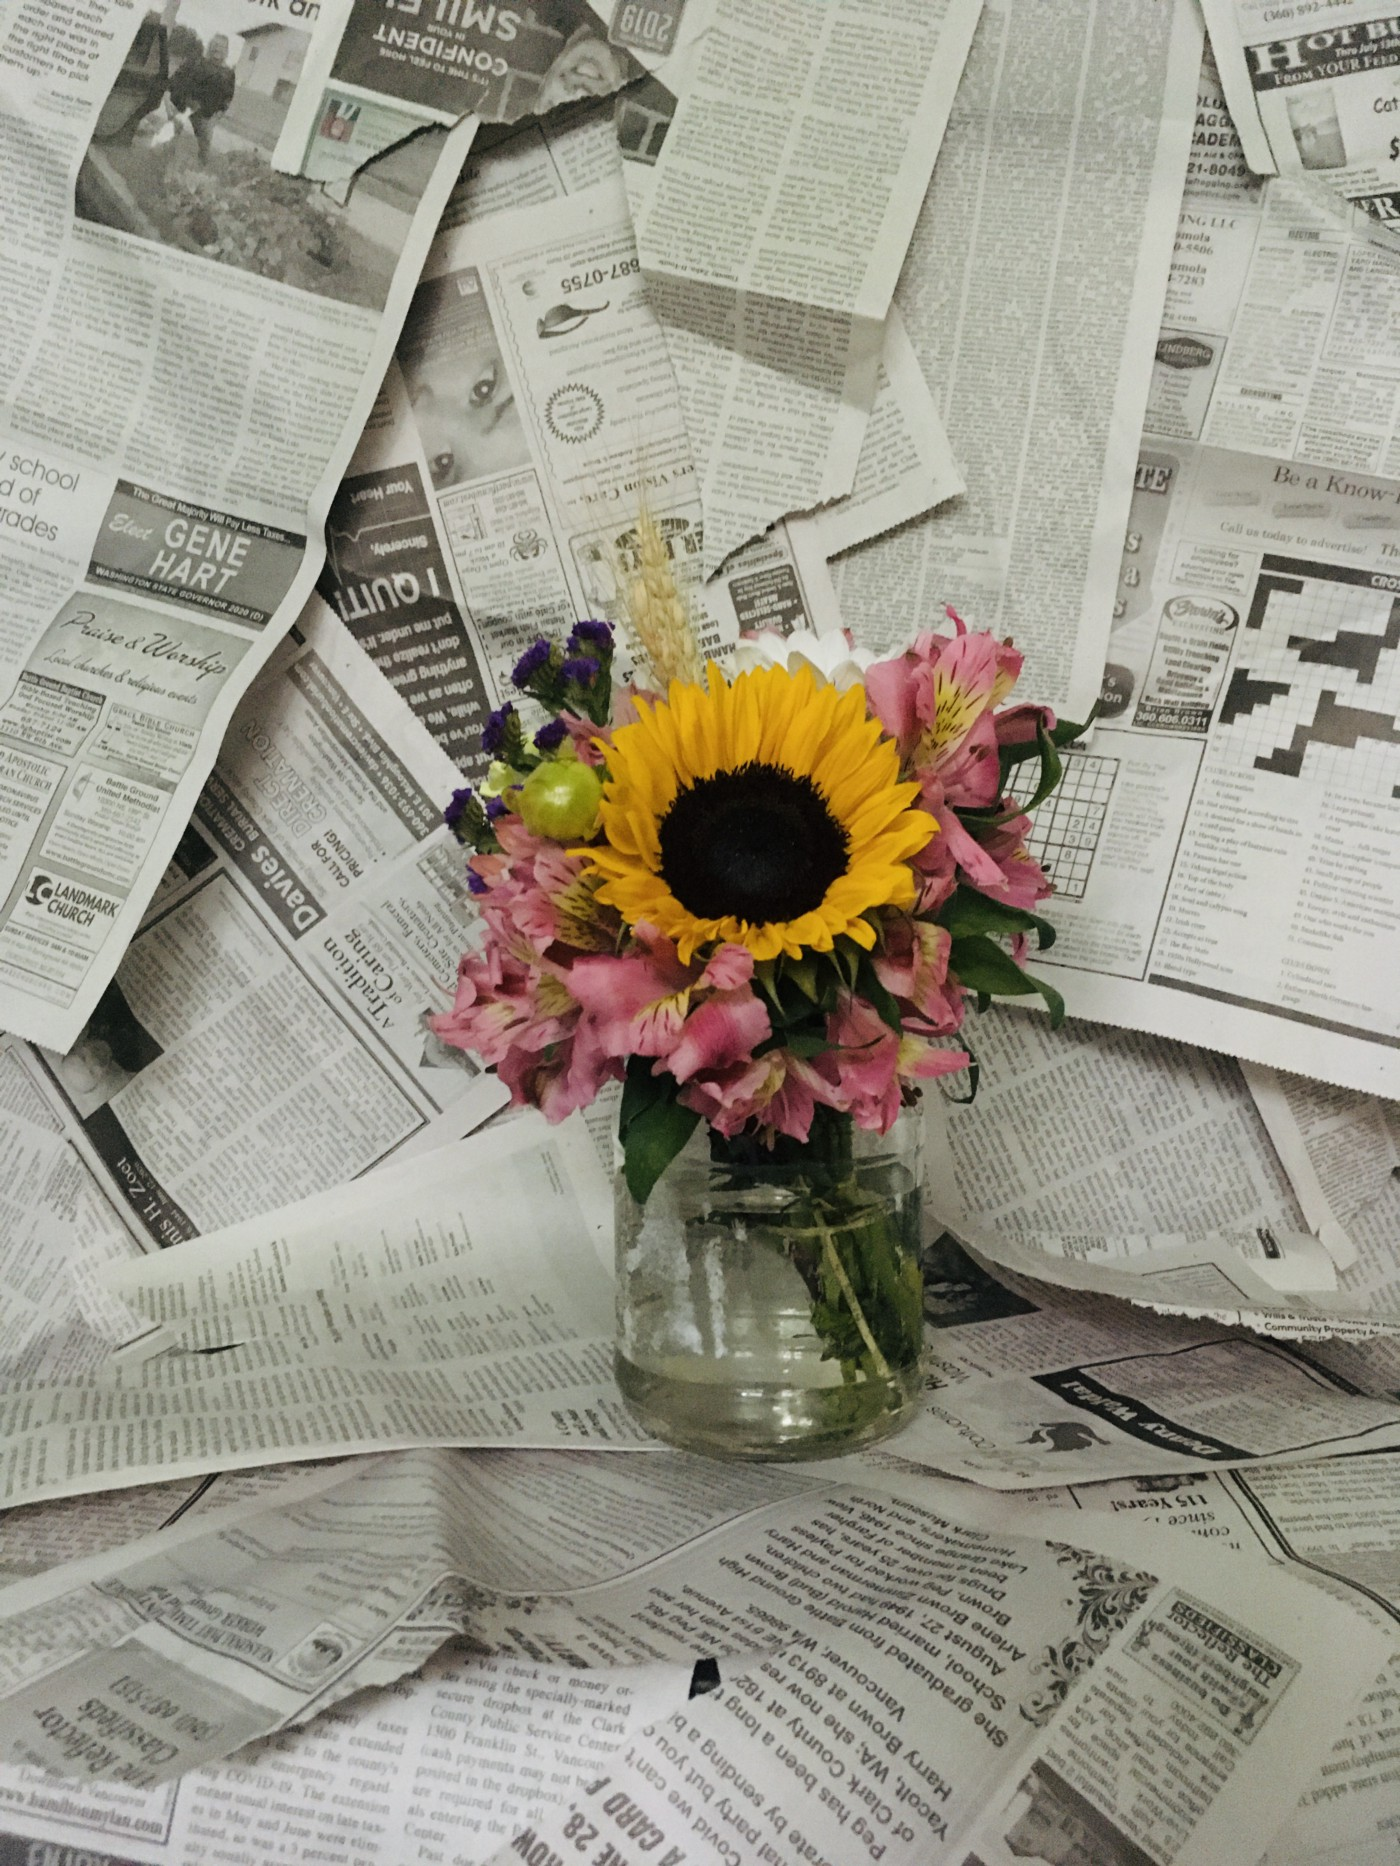 Newspaper clippings with a bouquet set on them